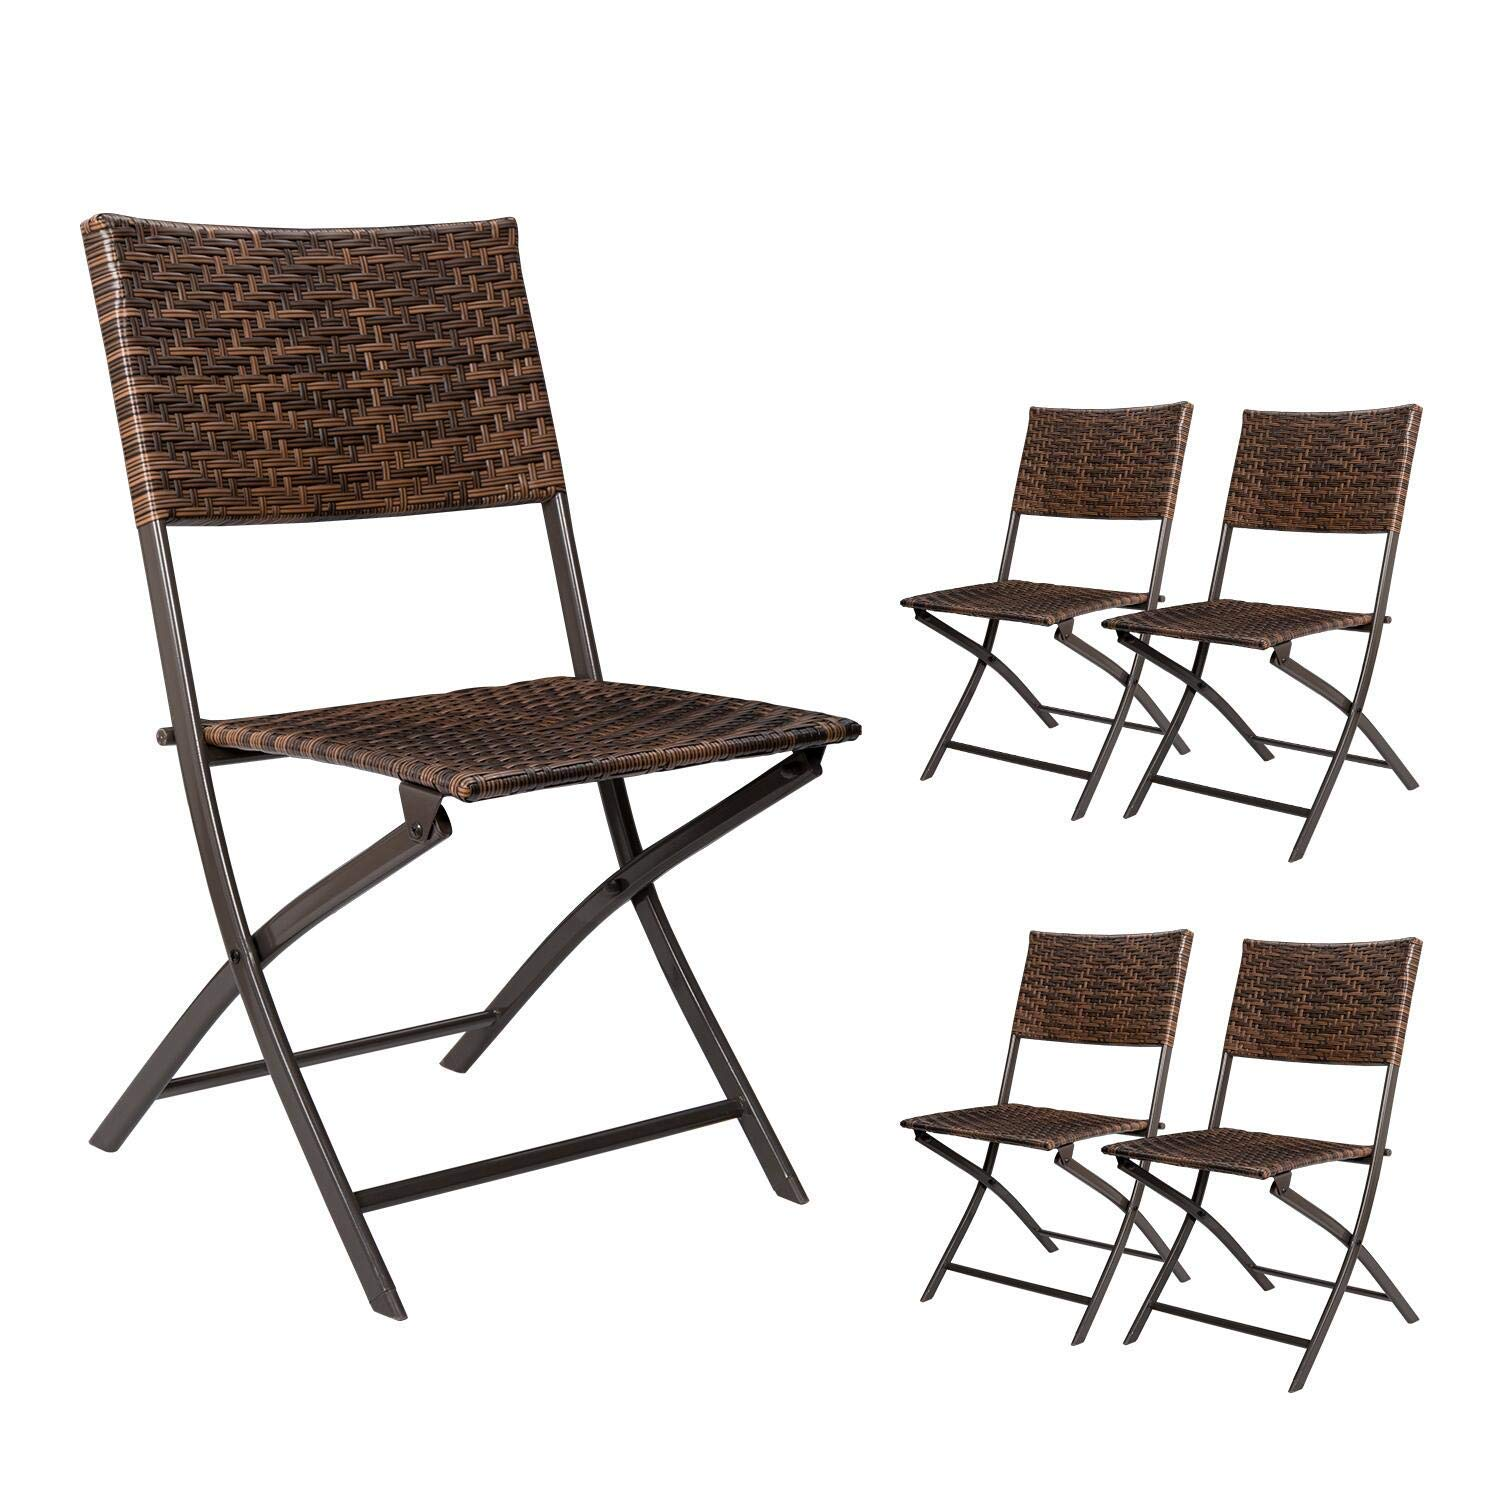 Amazing Ai Deck Chair Rattan Folding Chairs Office Lunch Break Chair Gmtry Best Dining Table And Chair Ideas Images Gmtryco